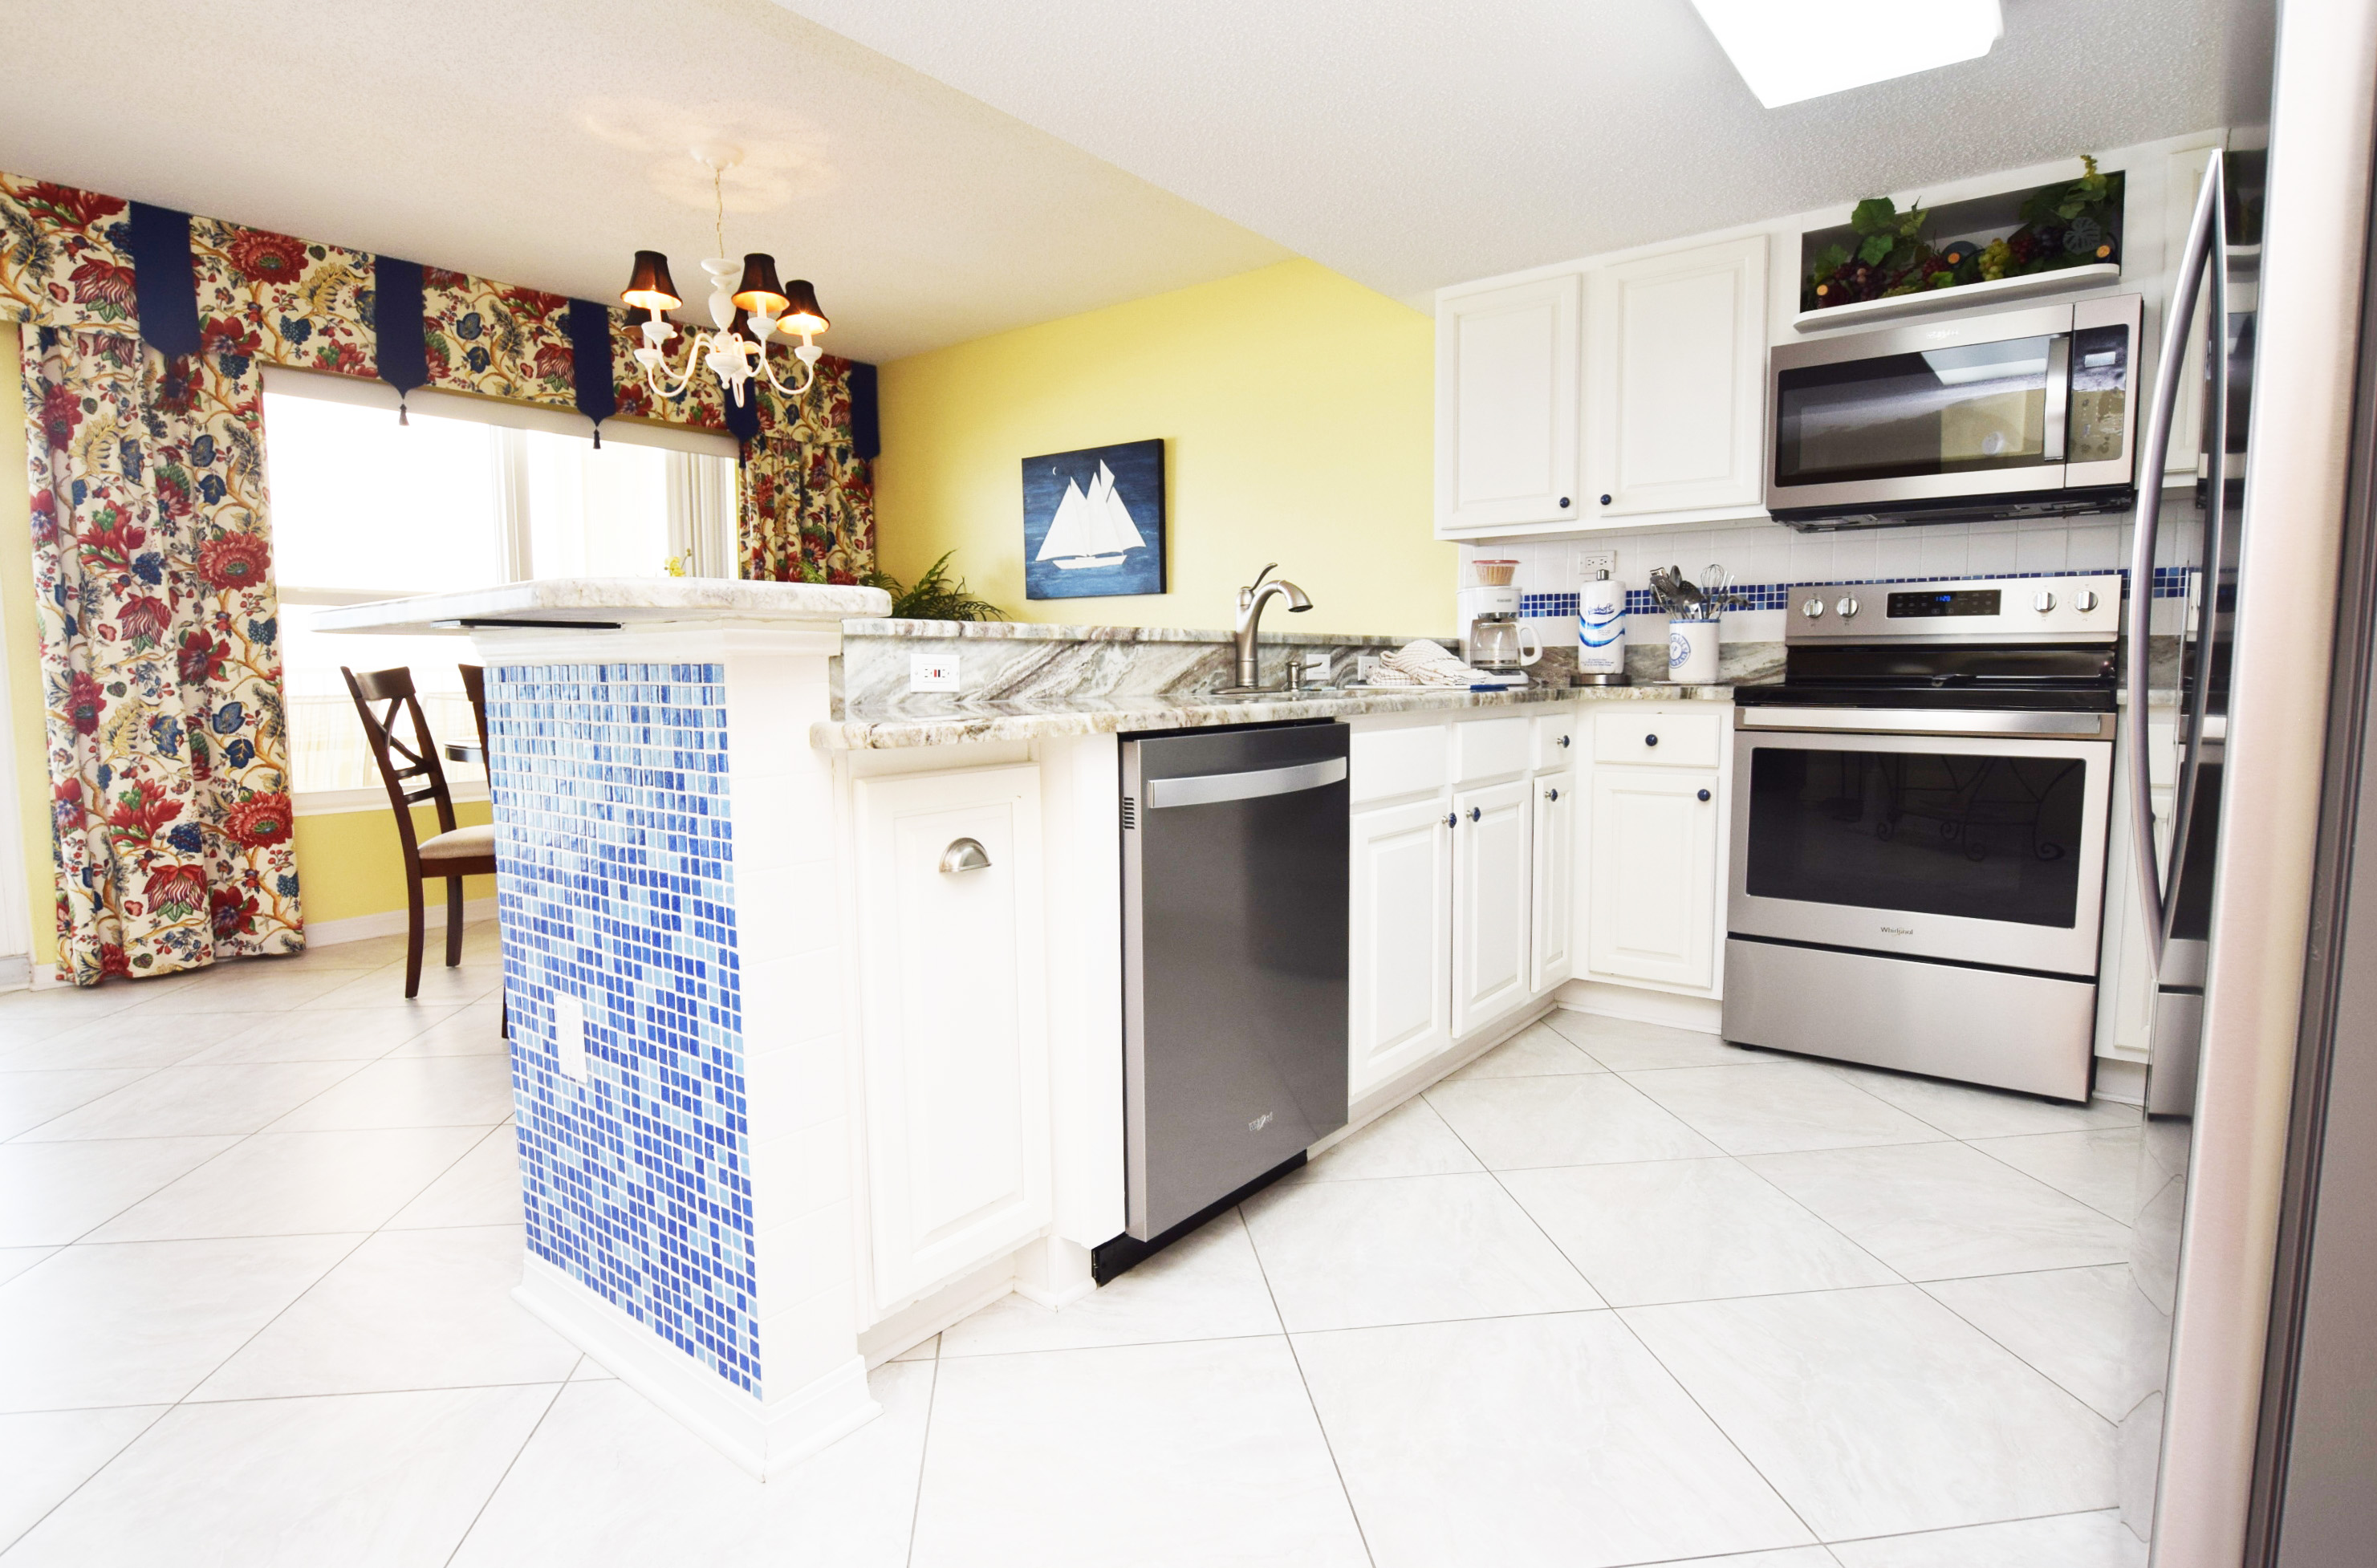 Kitchen - Islander Beach 4009 Fort Walton Beach Okaloosa Island Vacation Rentals